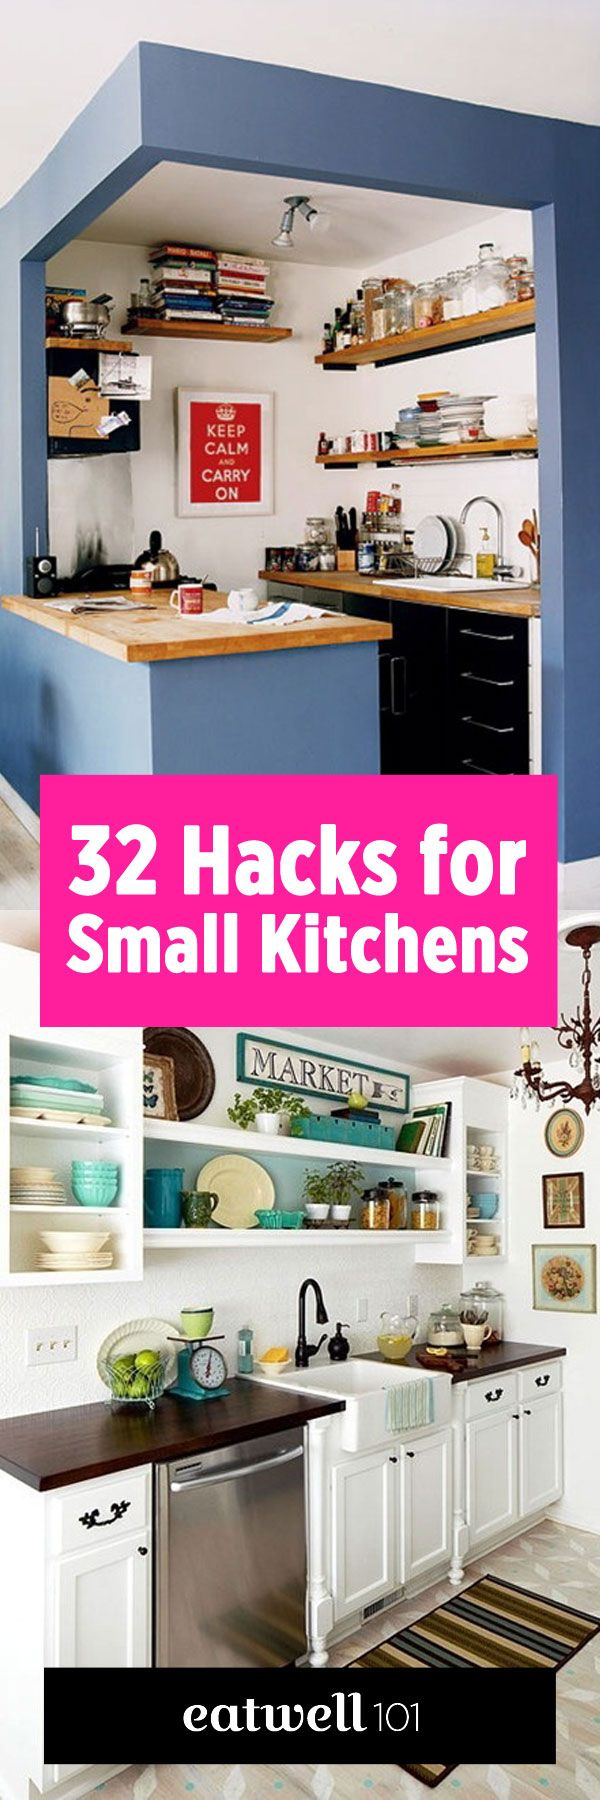 Best 25 small kitchen diy ideas on pinterest small - Small space makeovers ideas ...